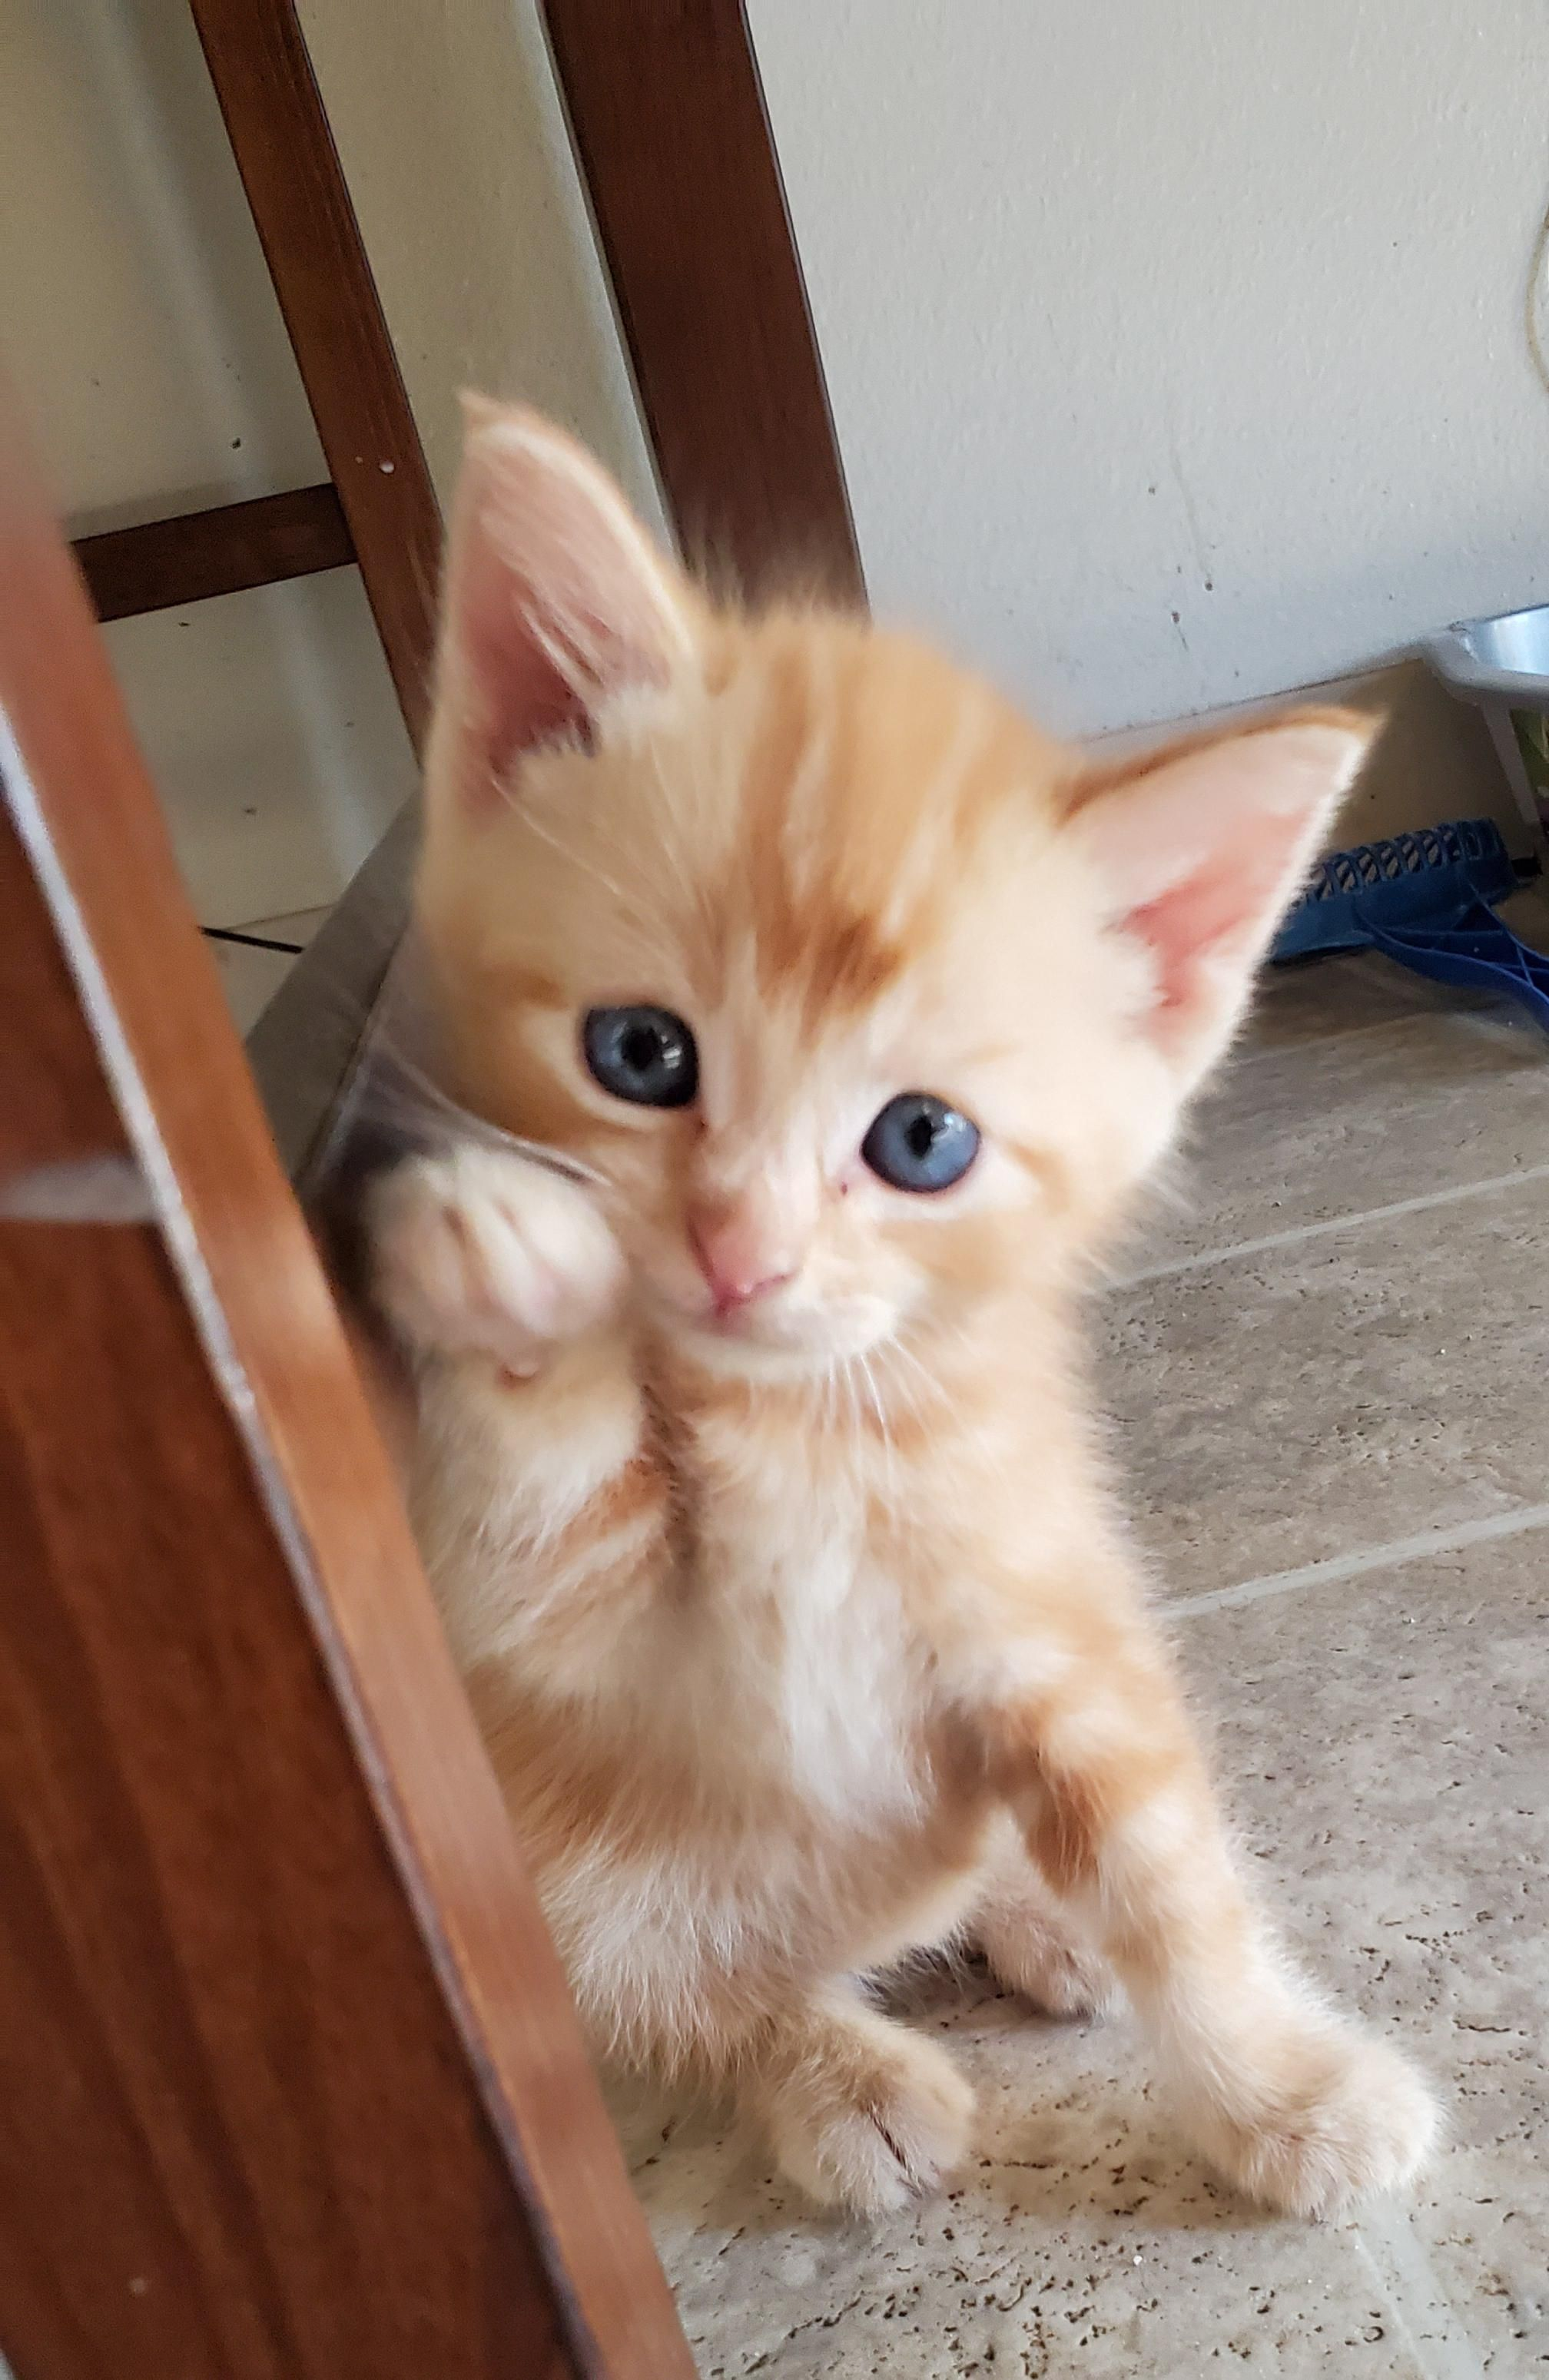 The Newest Member Of Our Family Says Hello This Is Sun Music Indieartist Chicago Cats And Kittens Cute Cats And Kittens Kittens Cutest